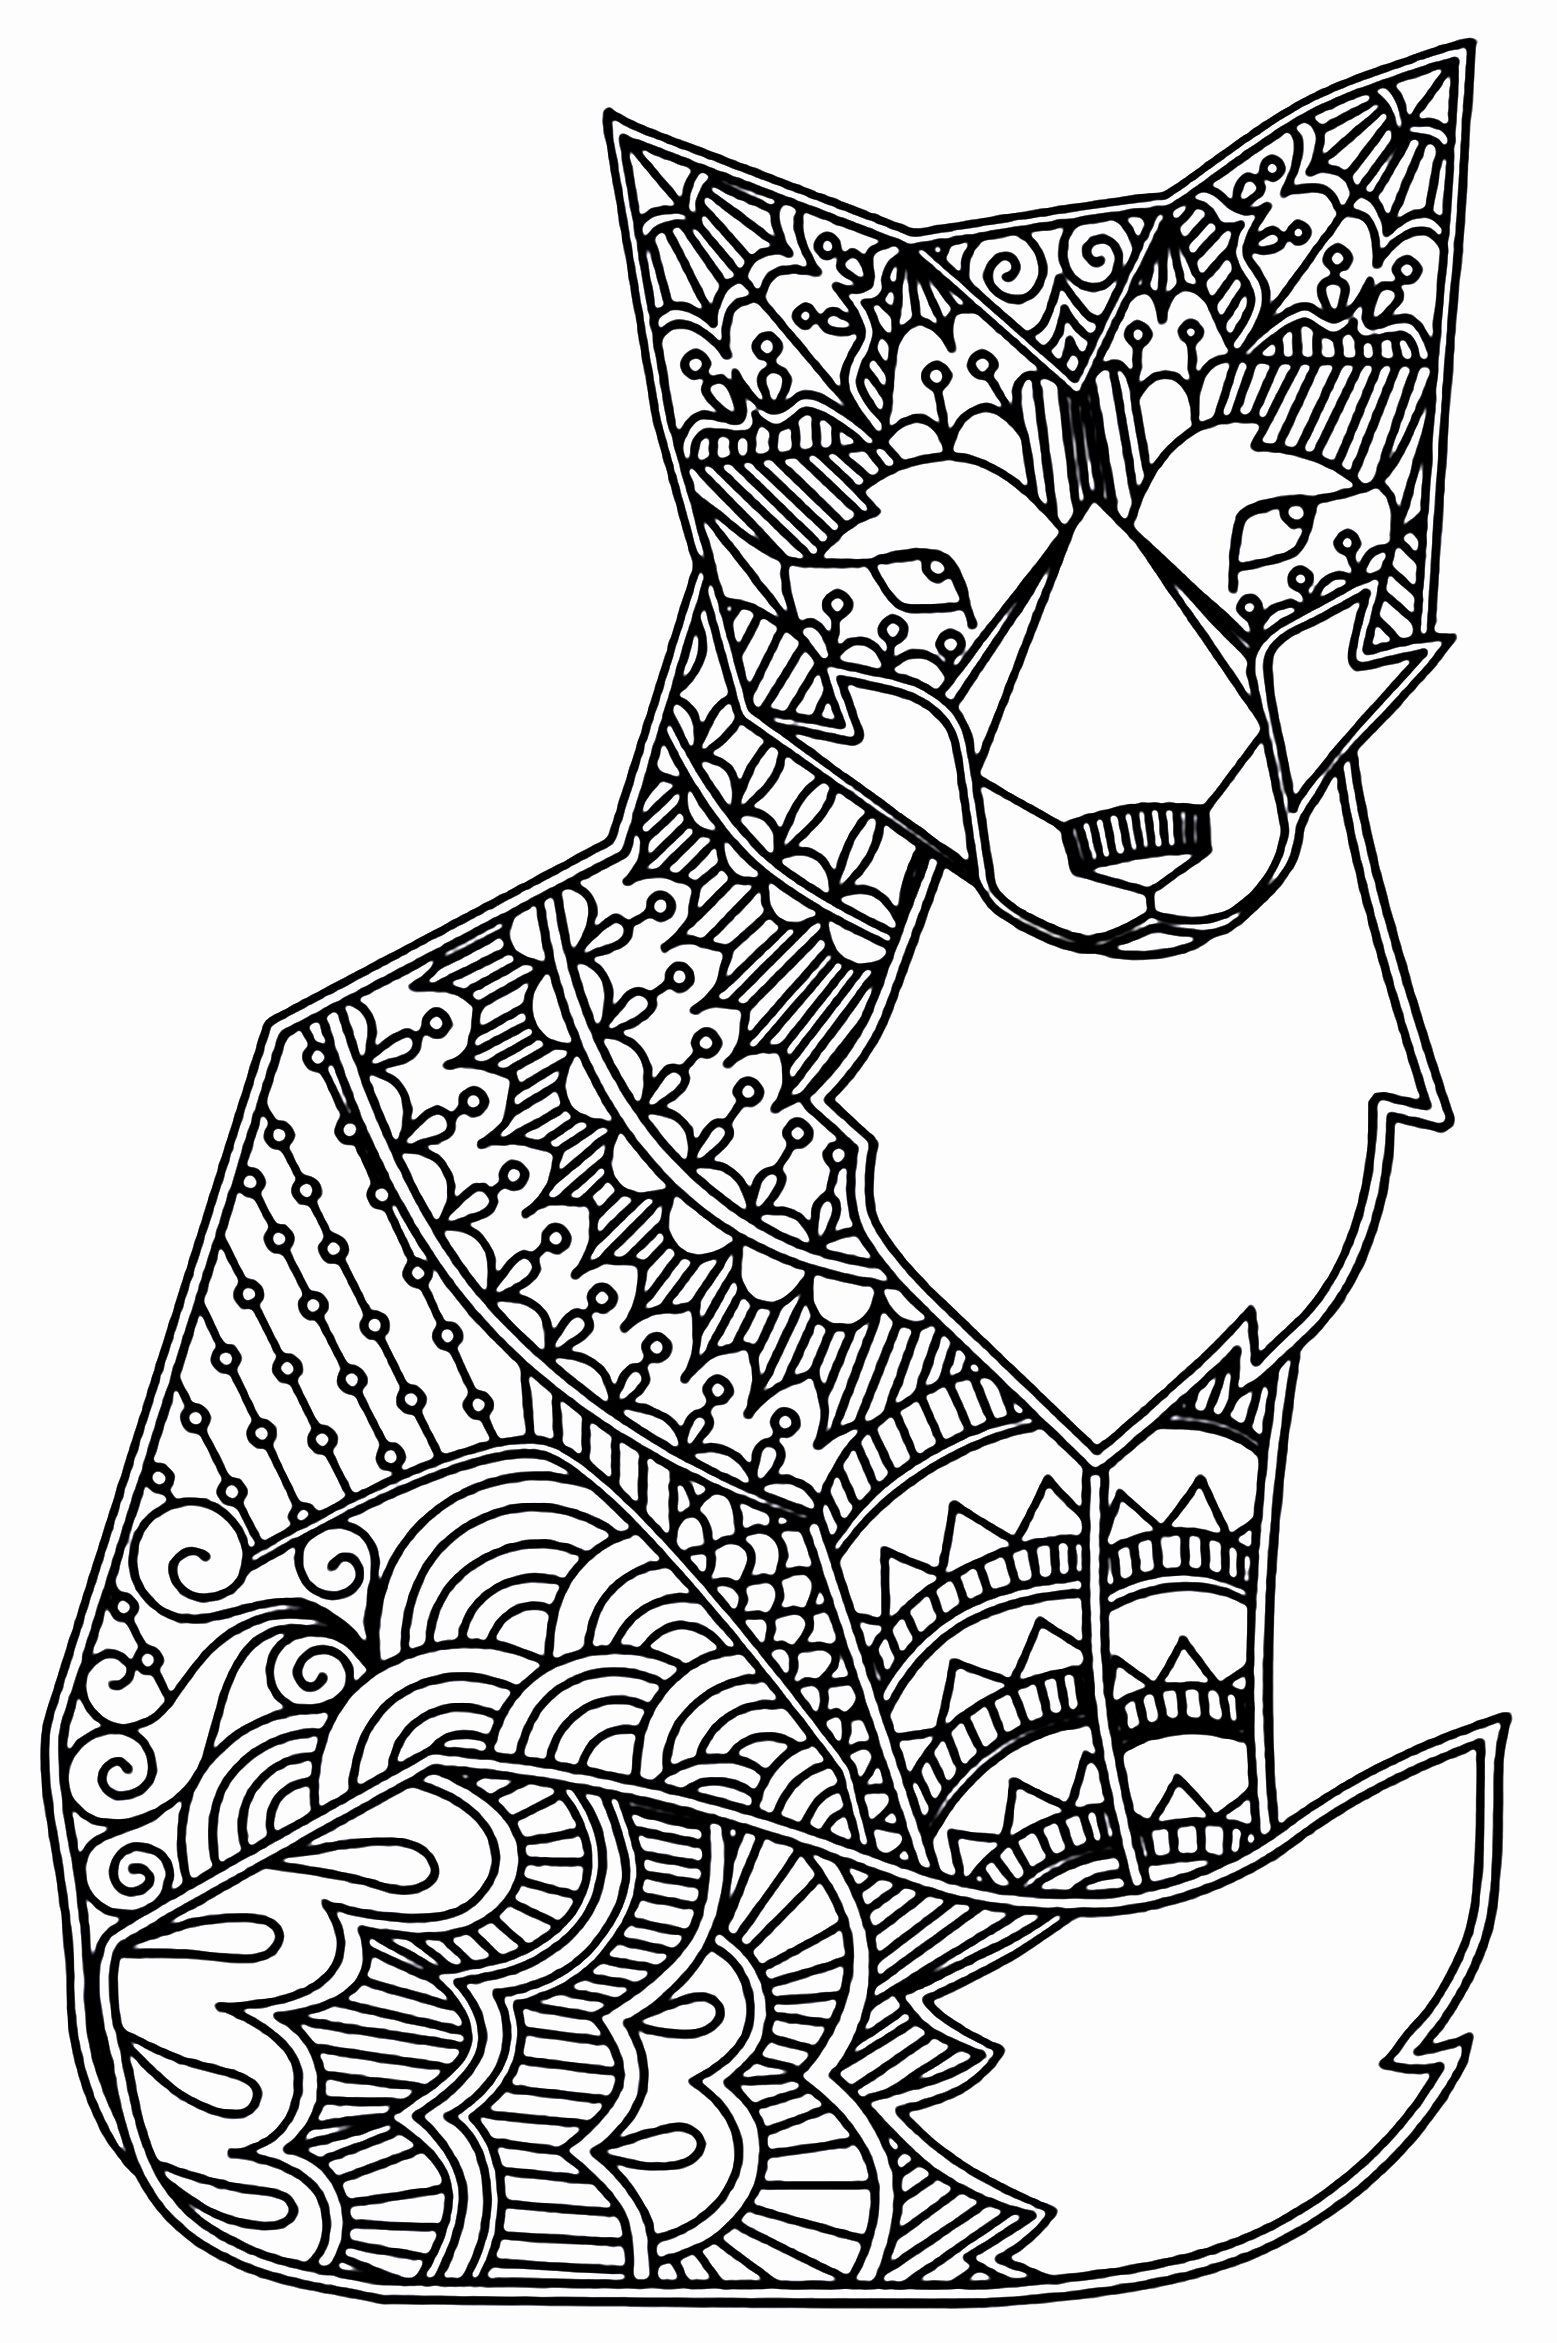 Pin On My Coloring Page Book Ideas In 2021 Fox Coloring Page Animal Coloring Pages Mandala Coloring Pages